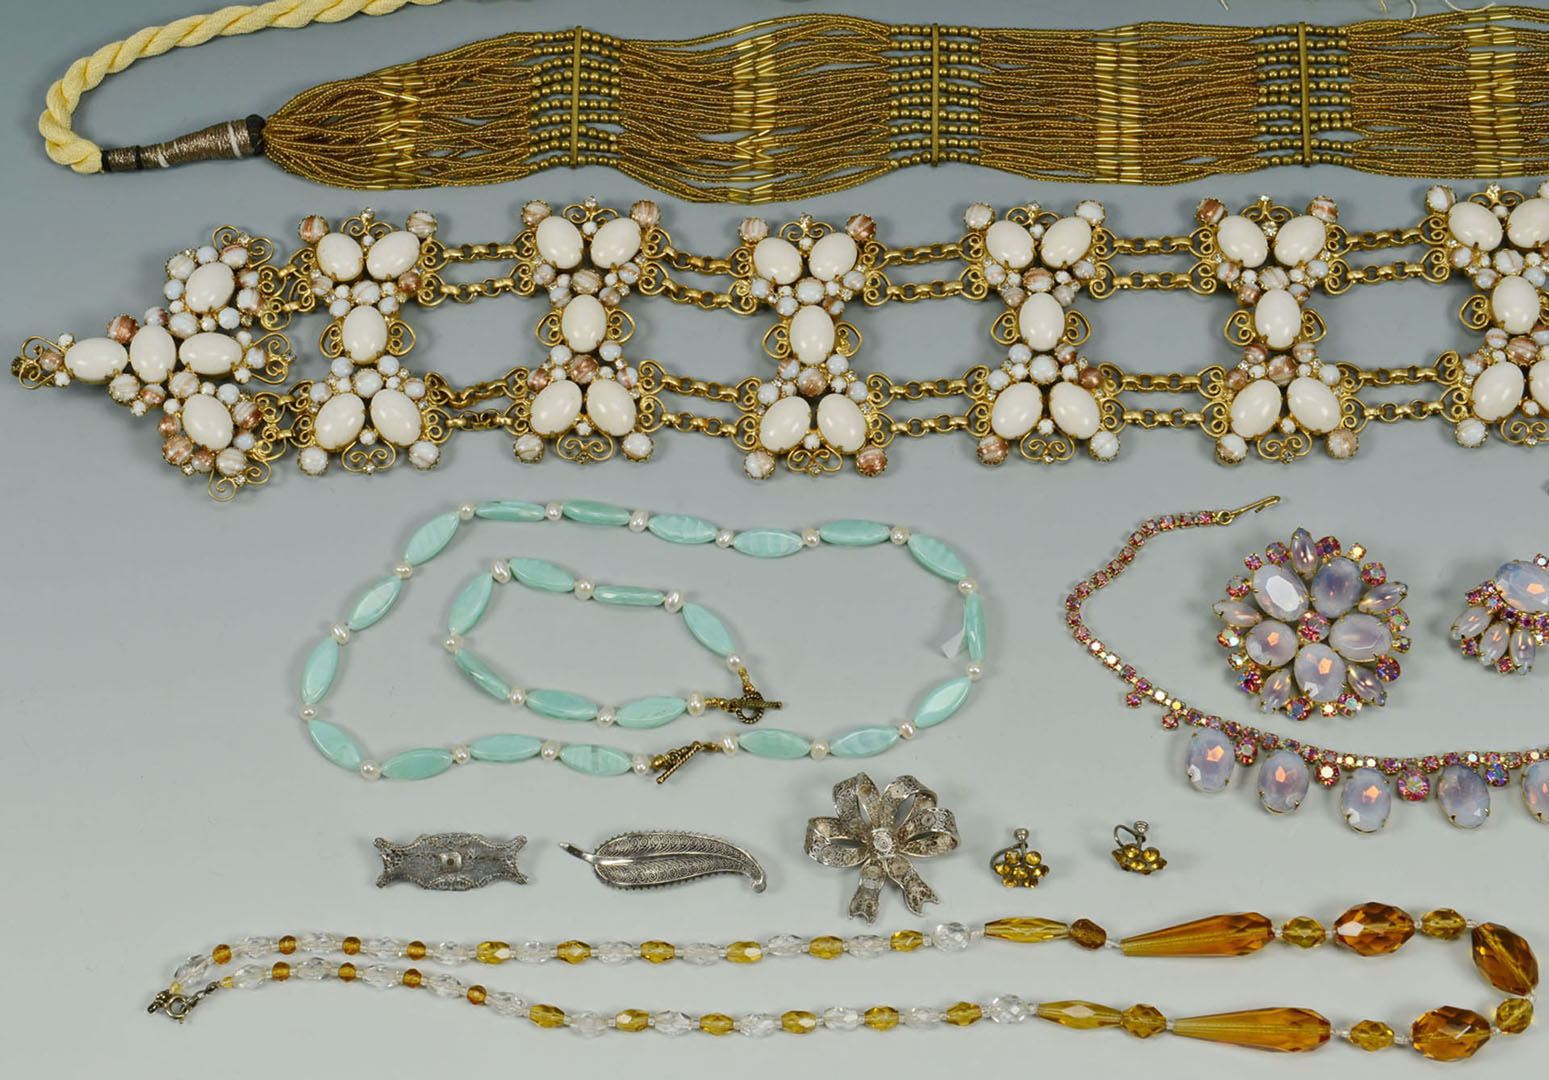 Lot 2872319: Large group of costume jewelry incl. bubble styles